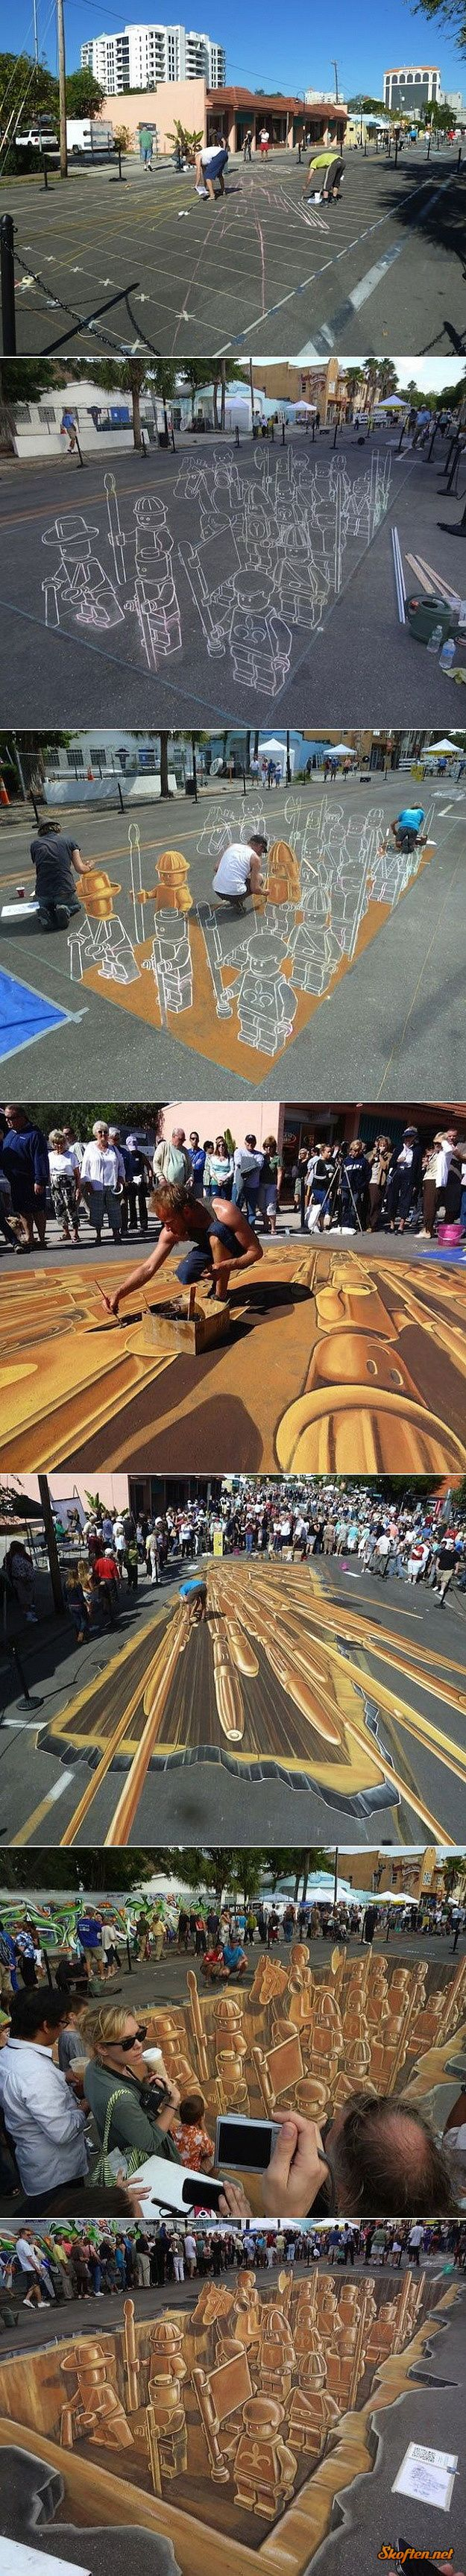 lego painting on the street